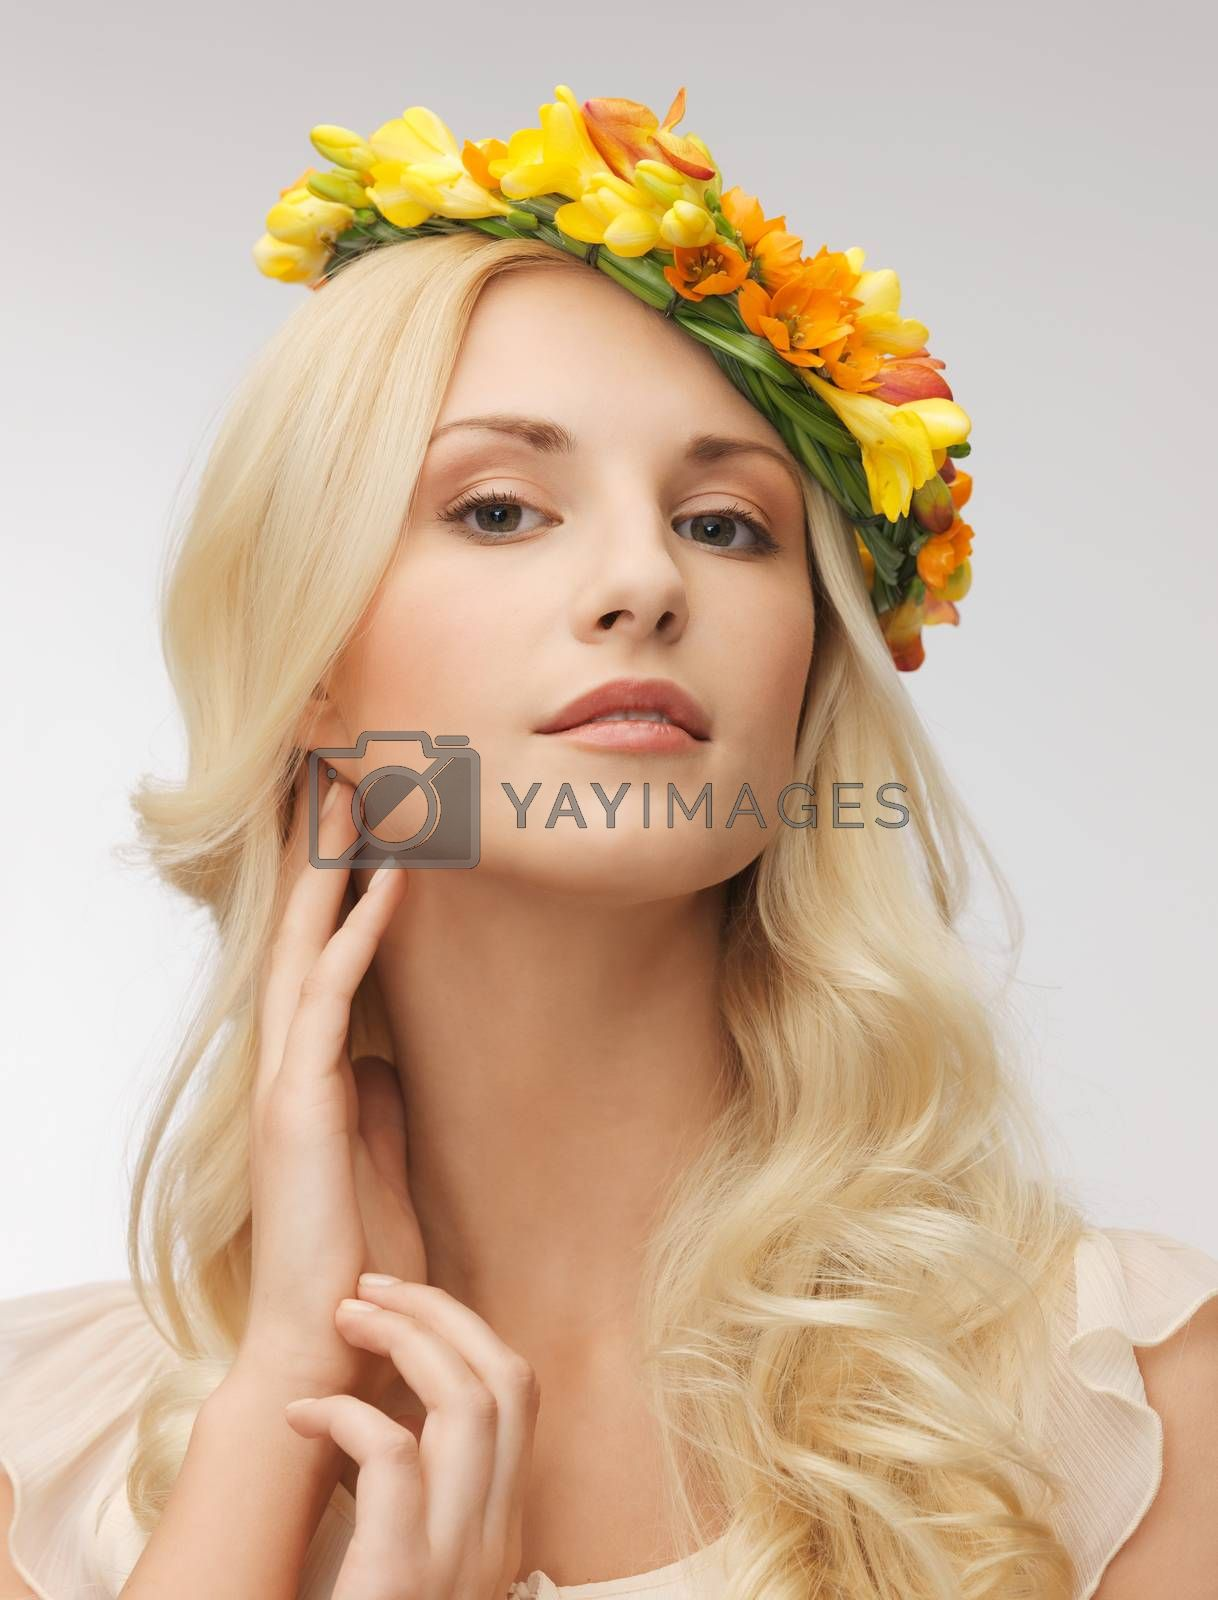 woman wearing wreath of flowers by dolgachov